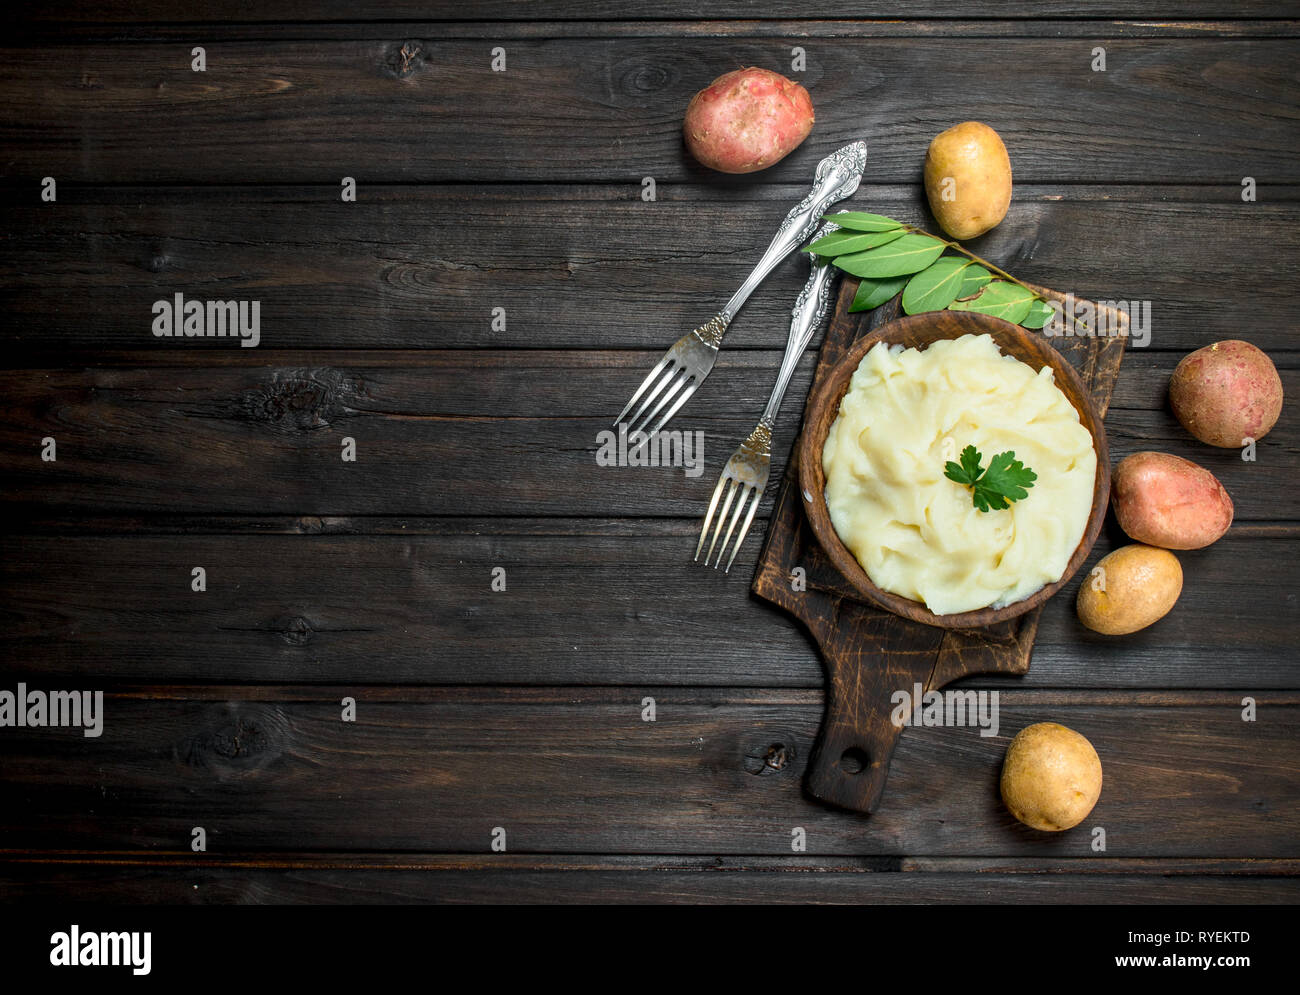 Mashed potatoes with a sprig of parsley . On a wooden background. - Stock Image